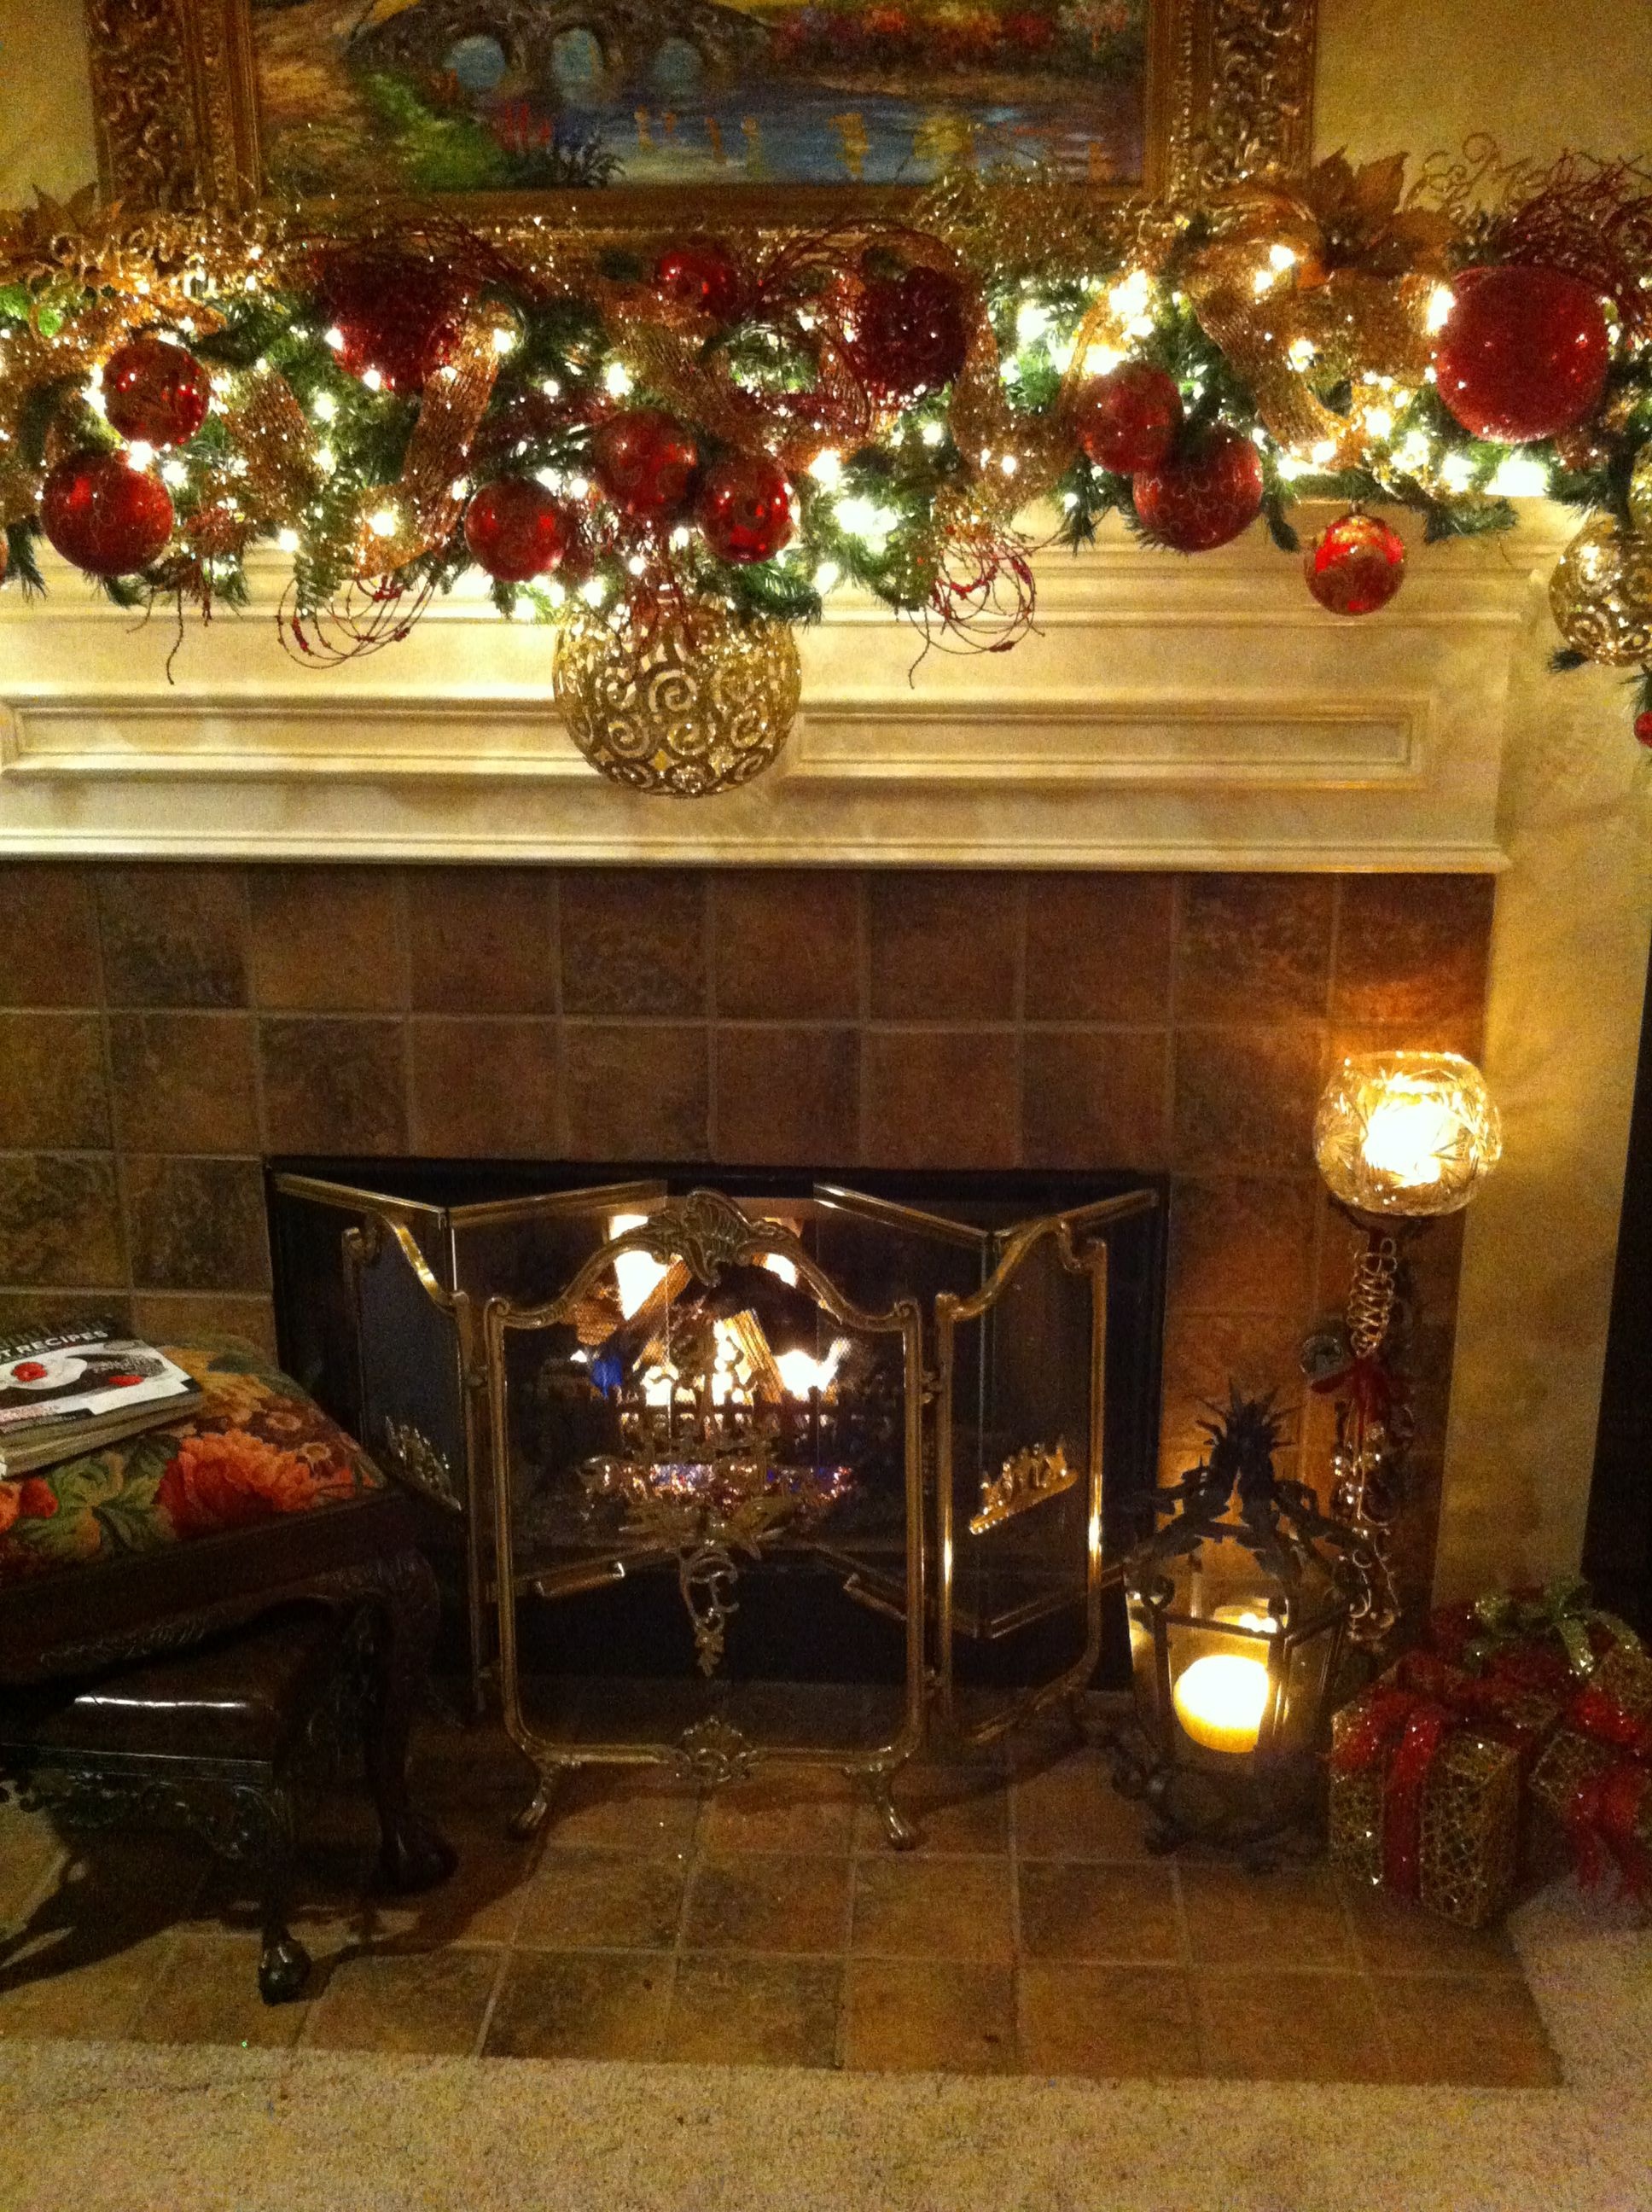 Working On My Christmas Mantle Decorations Tonight Love All The Ideas On Pinterest Christmas Fireplace Christmas Fireplace Decor Christmas Decorations